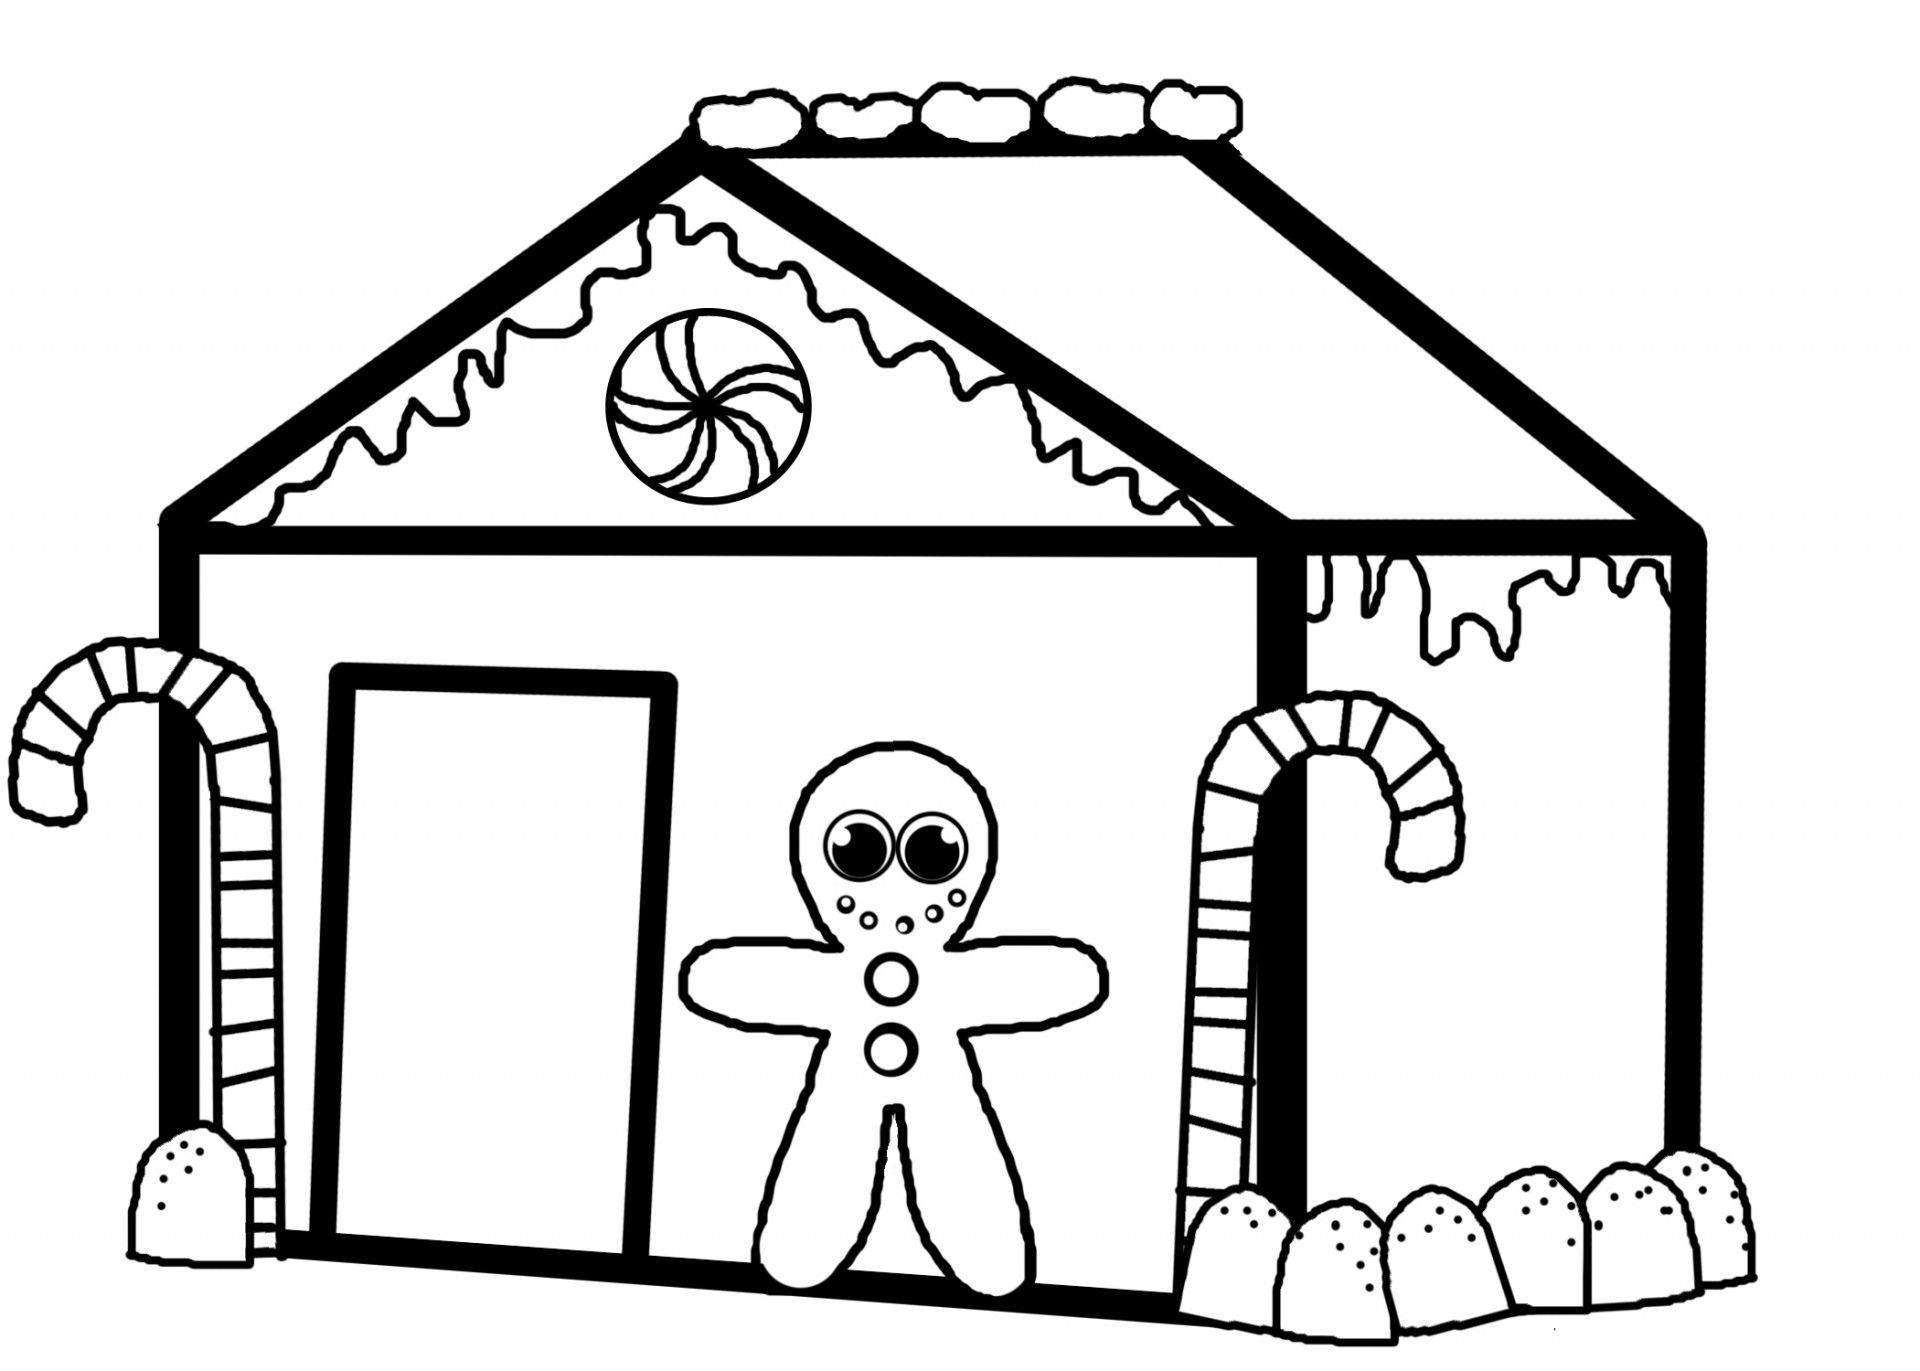 coloring gingerbread house free printable gingerbread house coloring pages for kids house gingerbread coloring